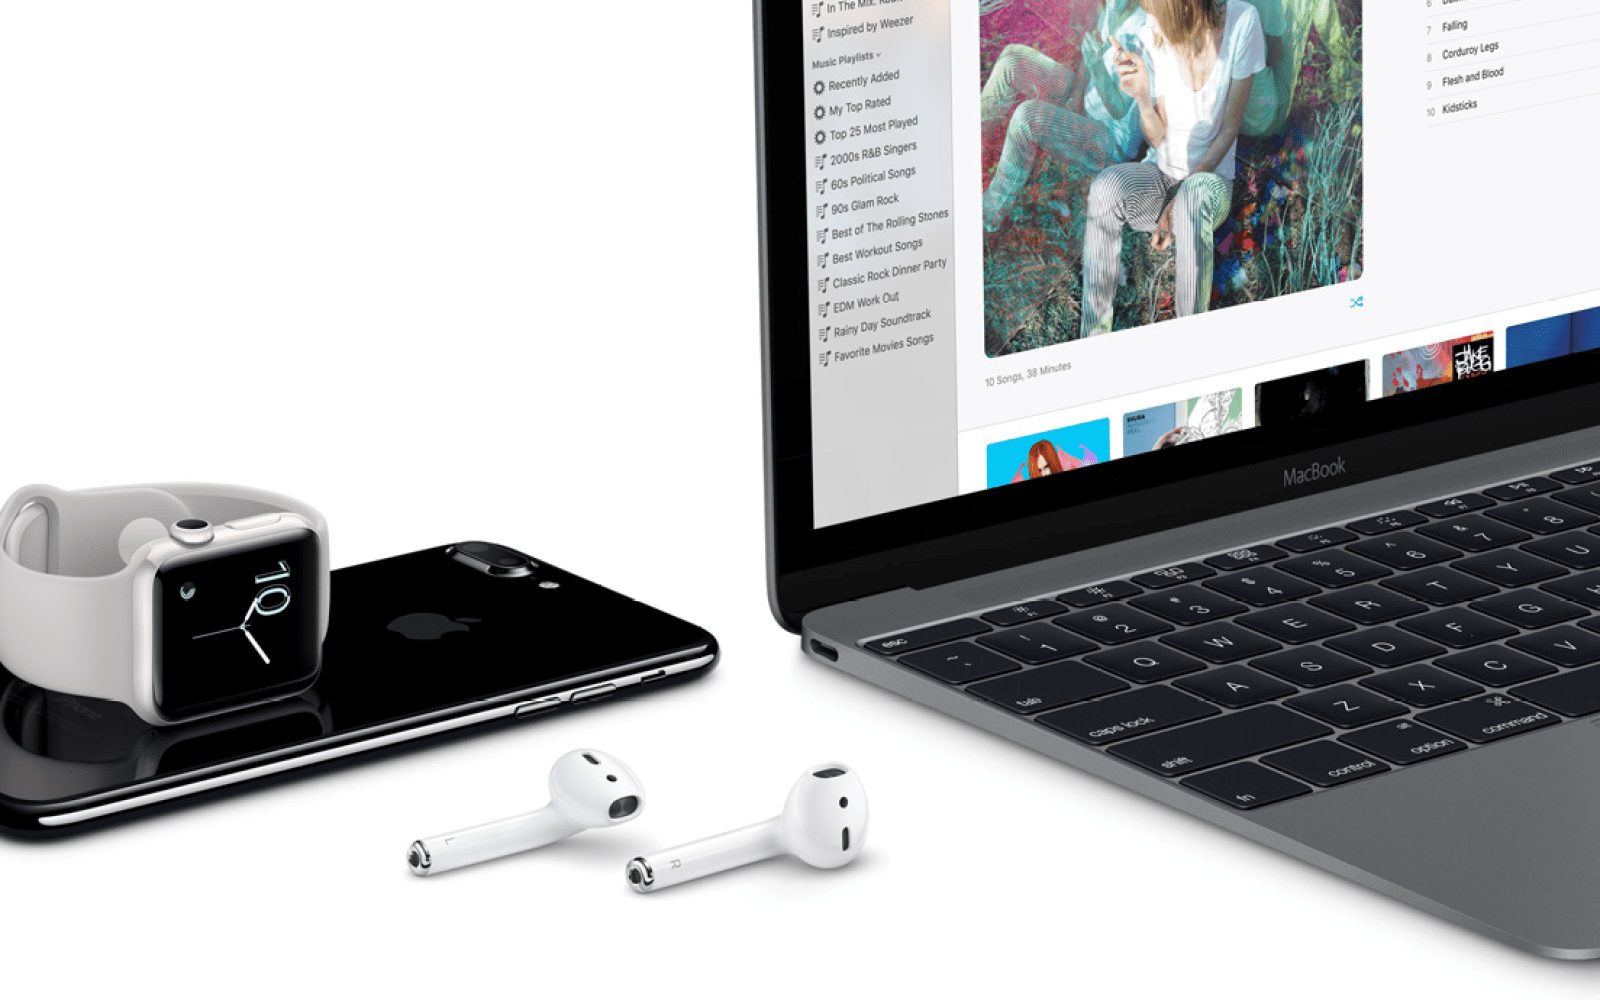 3c7a5351e95 PSA: You'll be able to try your luck at buying AirPods in Apple Stores  starting Monday